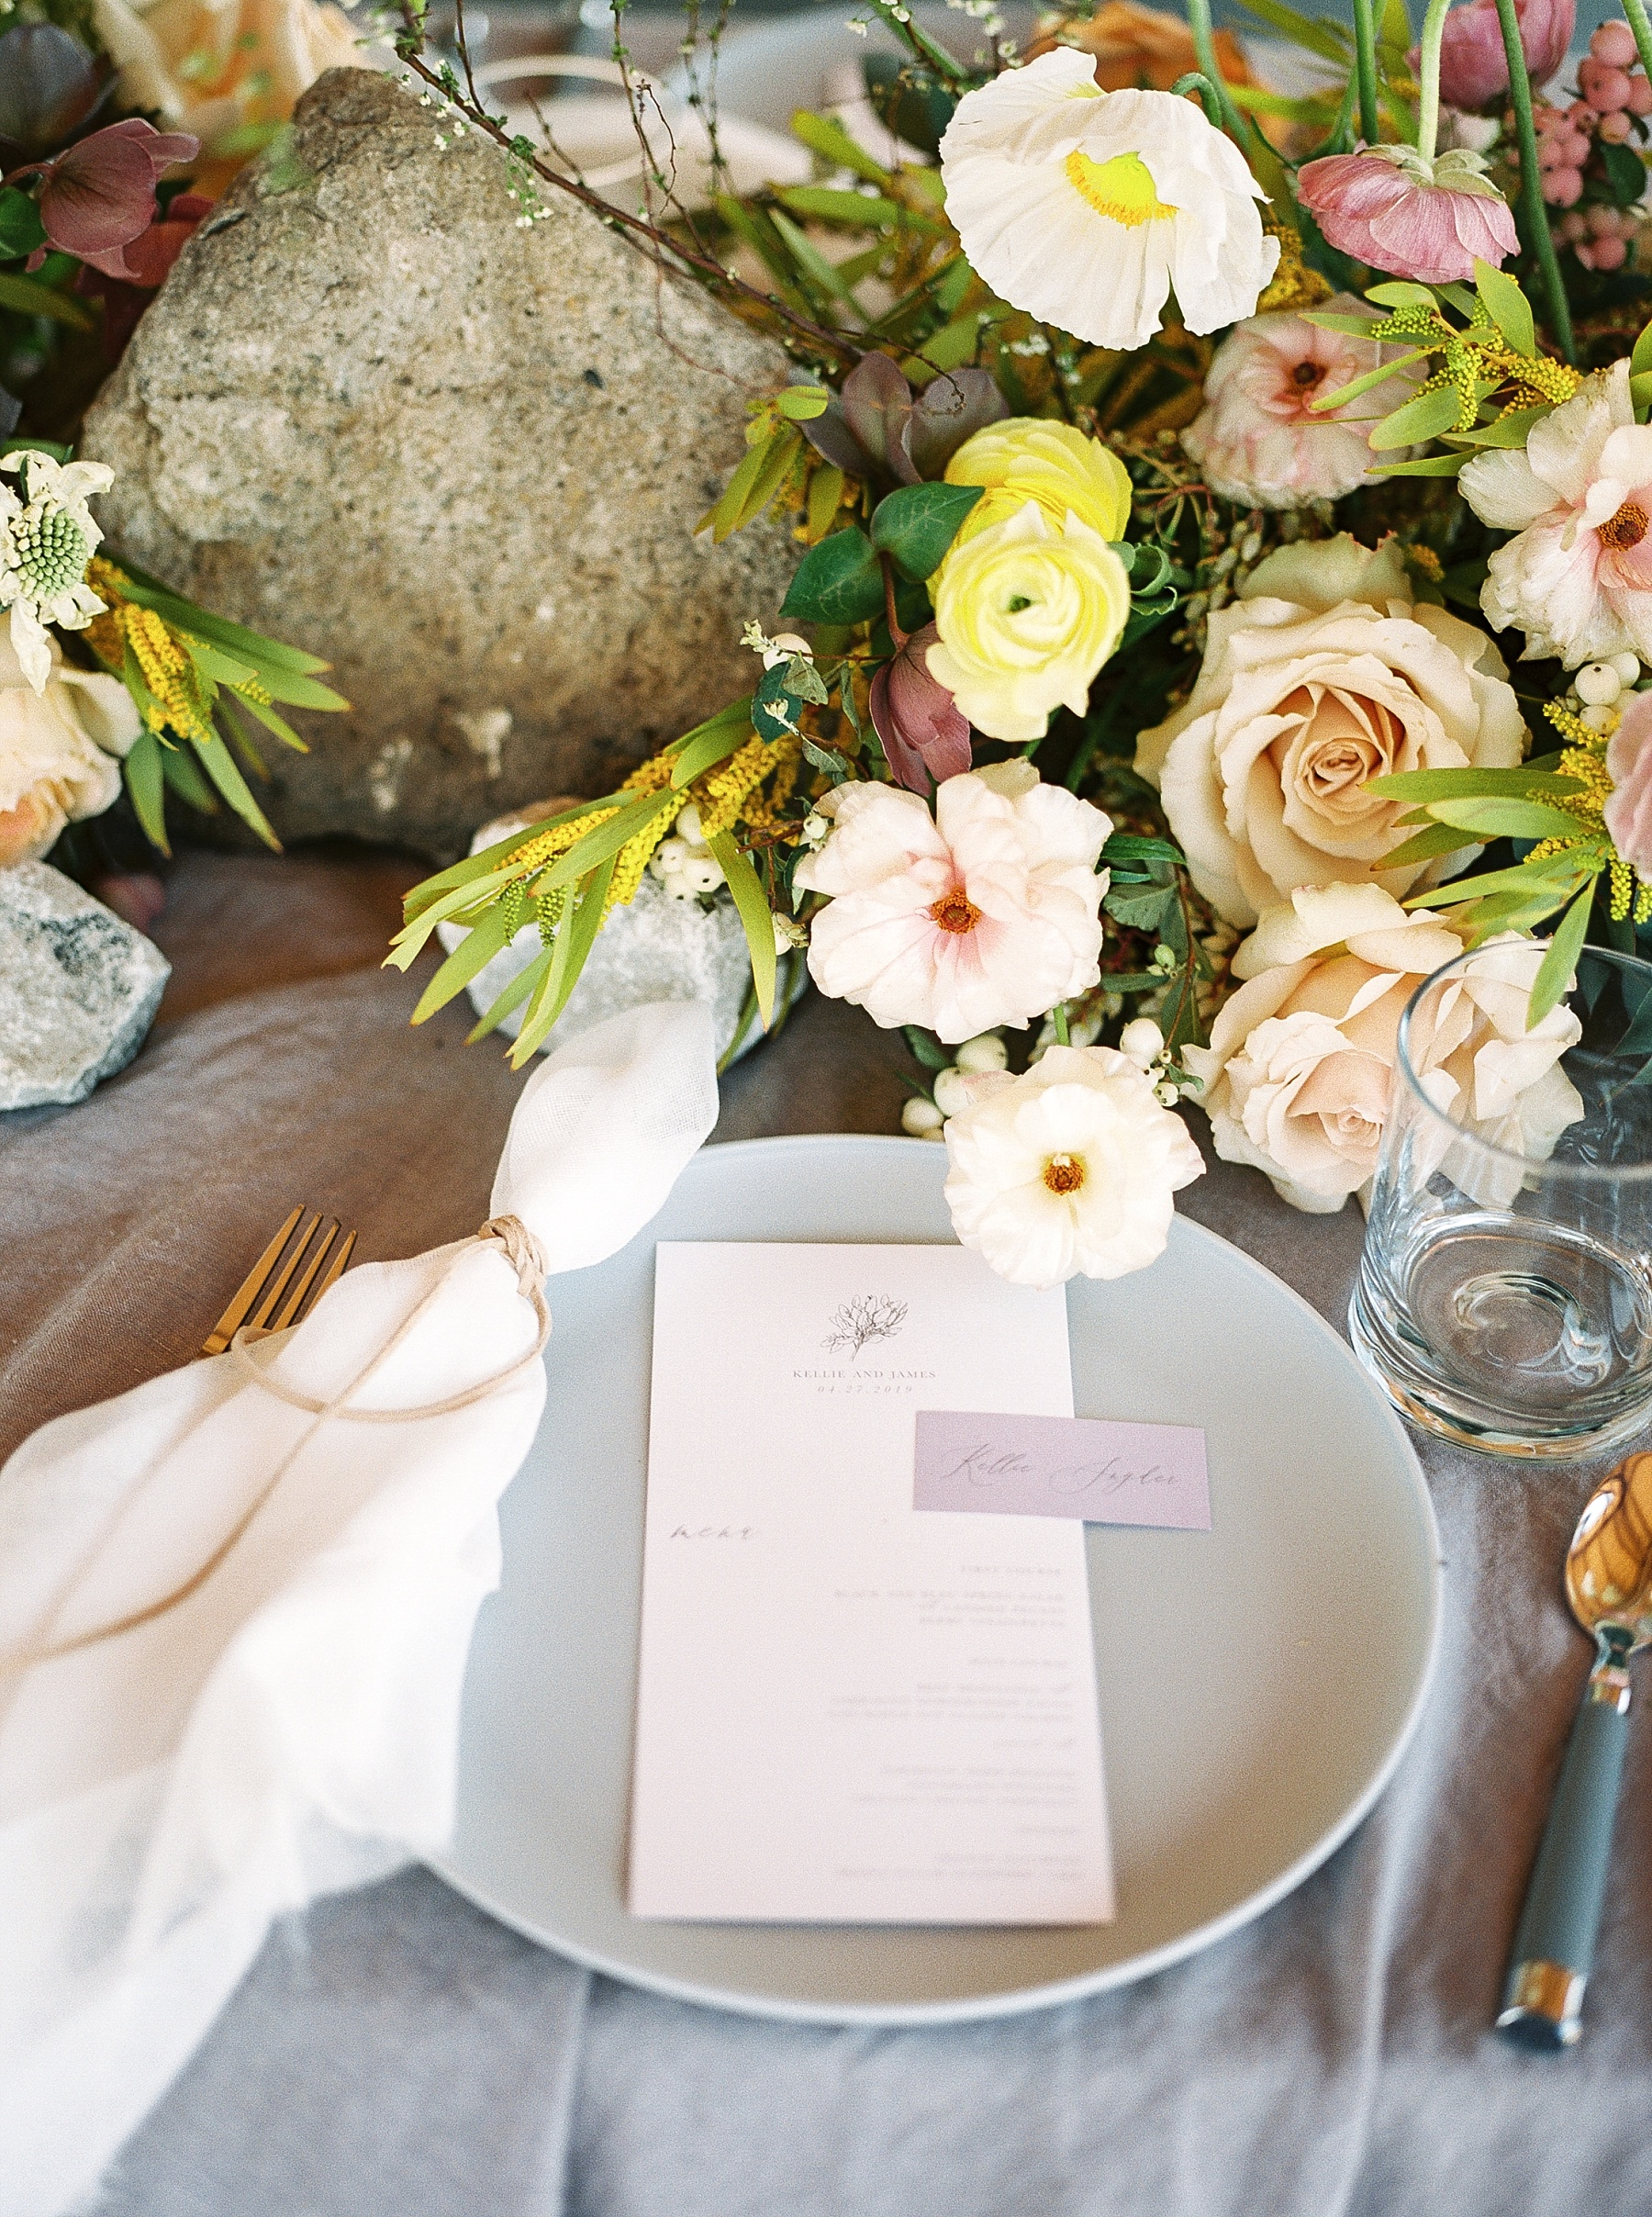 Lakeside Sunset Wedding with Magnificent Abundance of Blooms at Emerson Fields by Kelsi Kliethermes Photography Best Missouri and Maui Wedding Photographer_0038.jpg